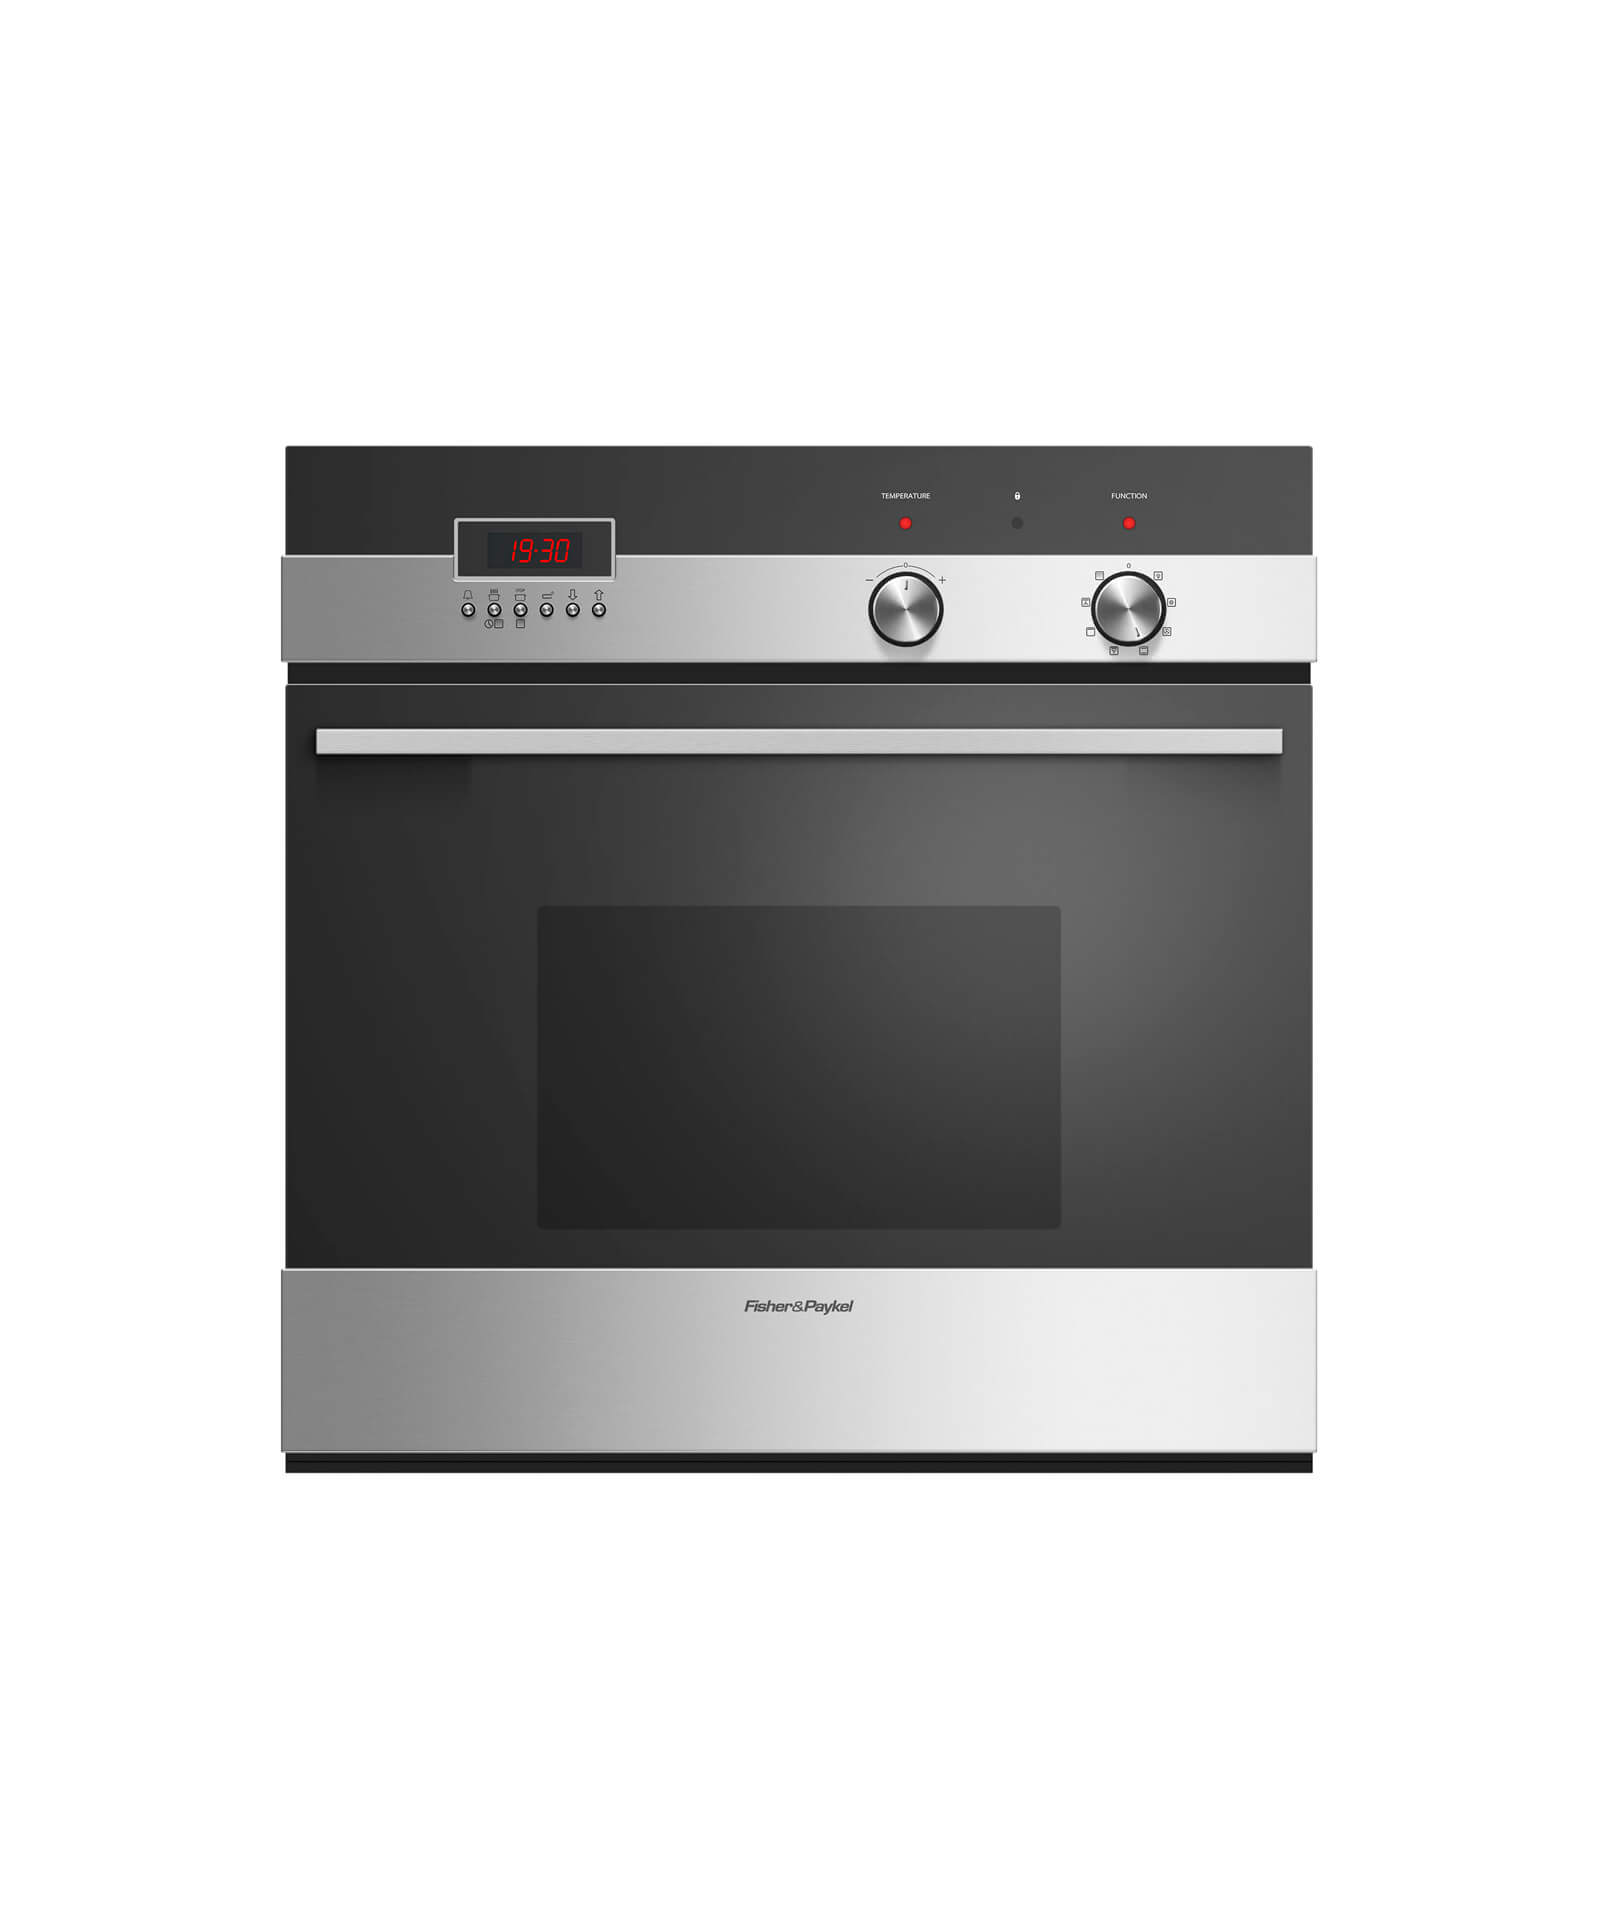 24&quote; Stainless Steel Single Built-in Oven